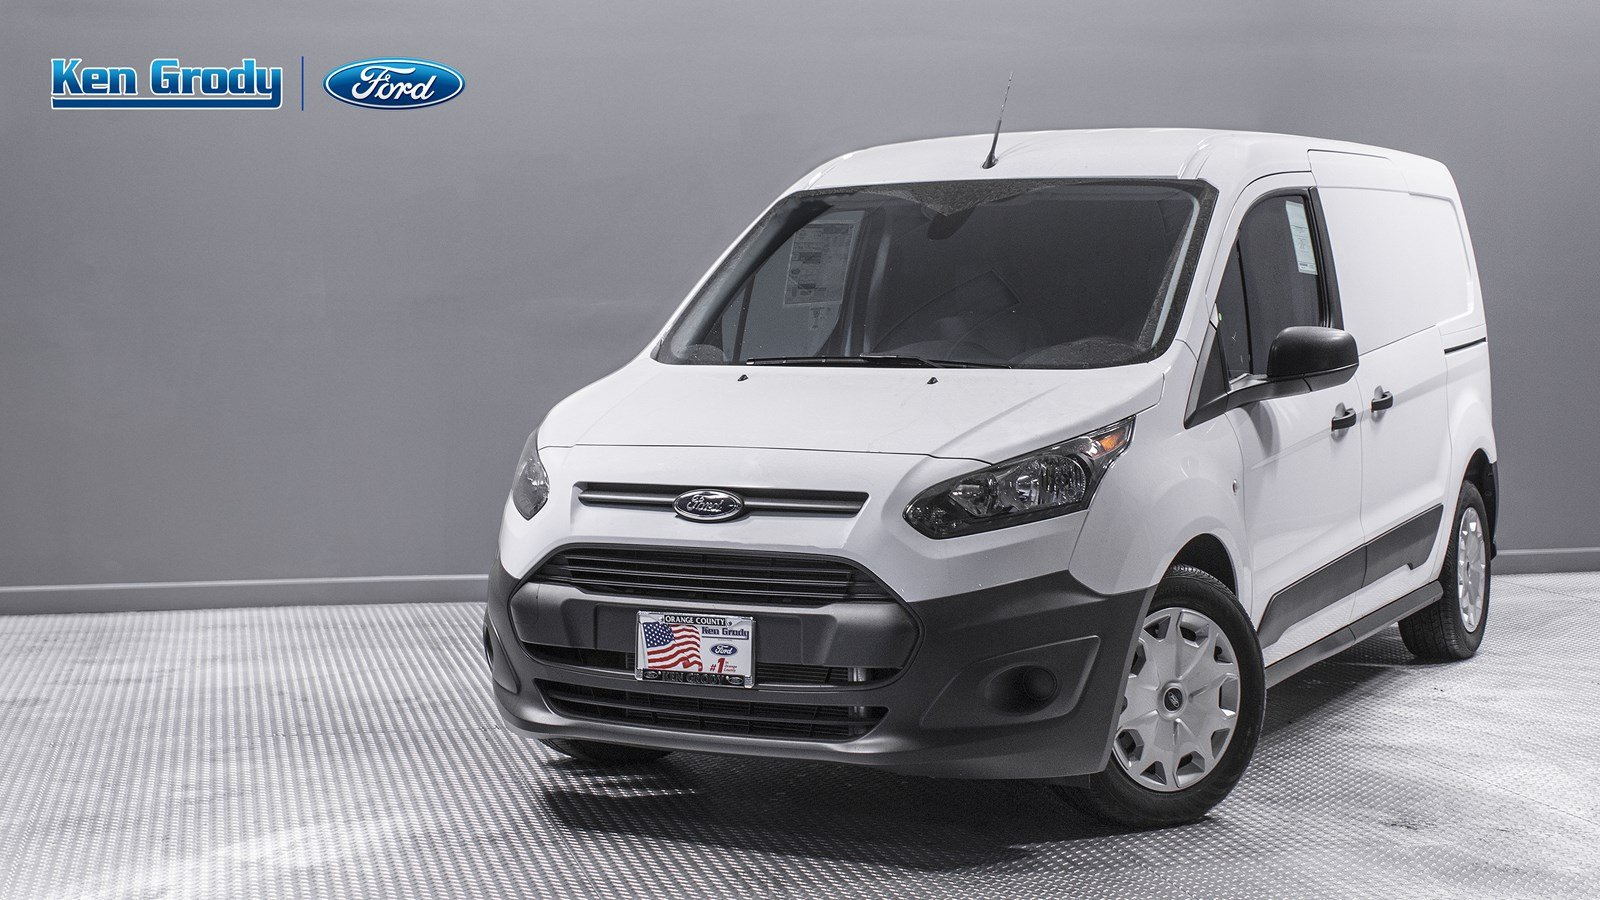 engine boomers targets baby news with wagon transit diesel ford connect photos